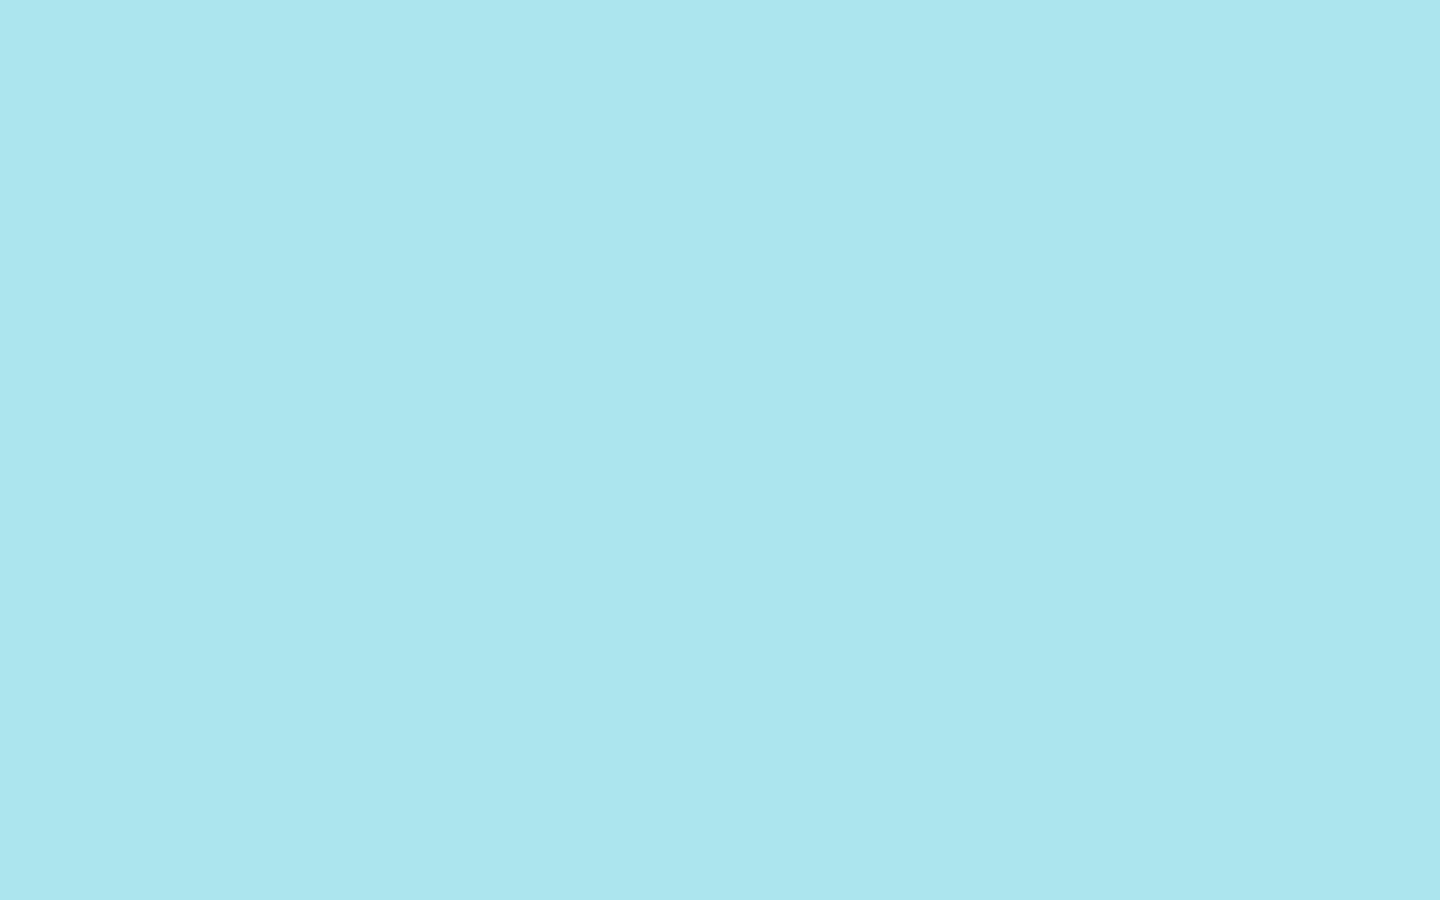 1440x900 Blizzard Blue Solid Color Background